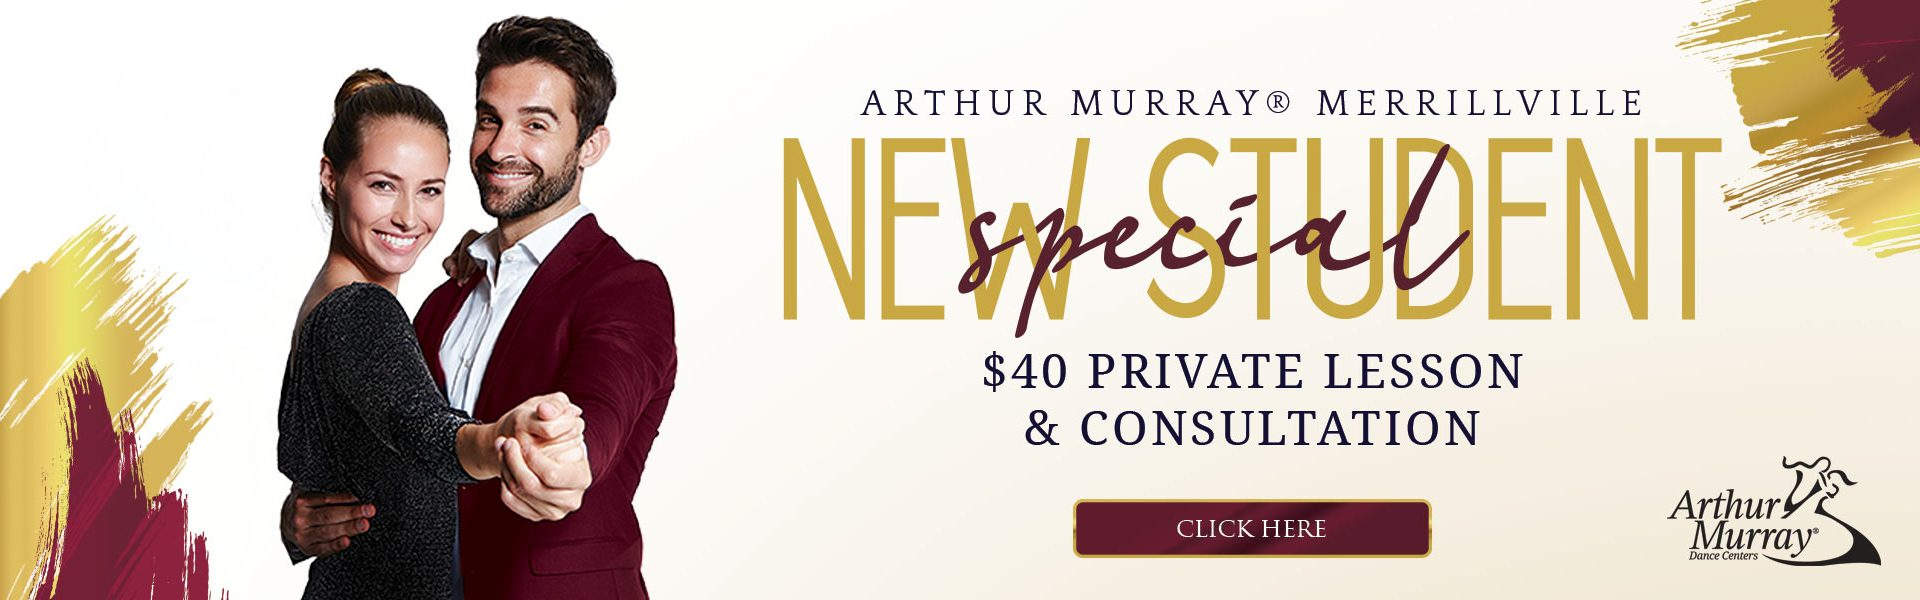 Arthur Murray Merrillville New Student Offer